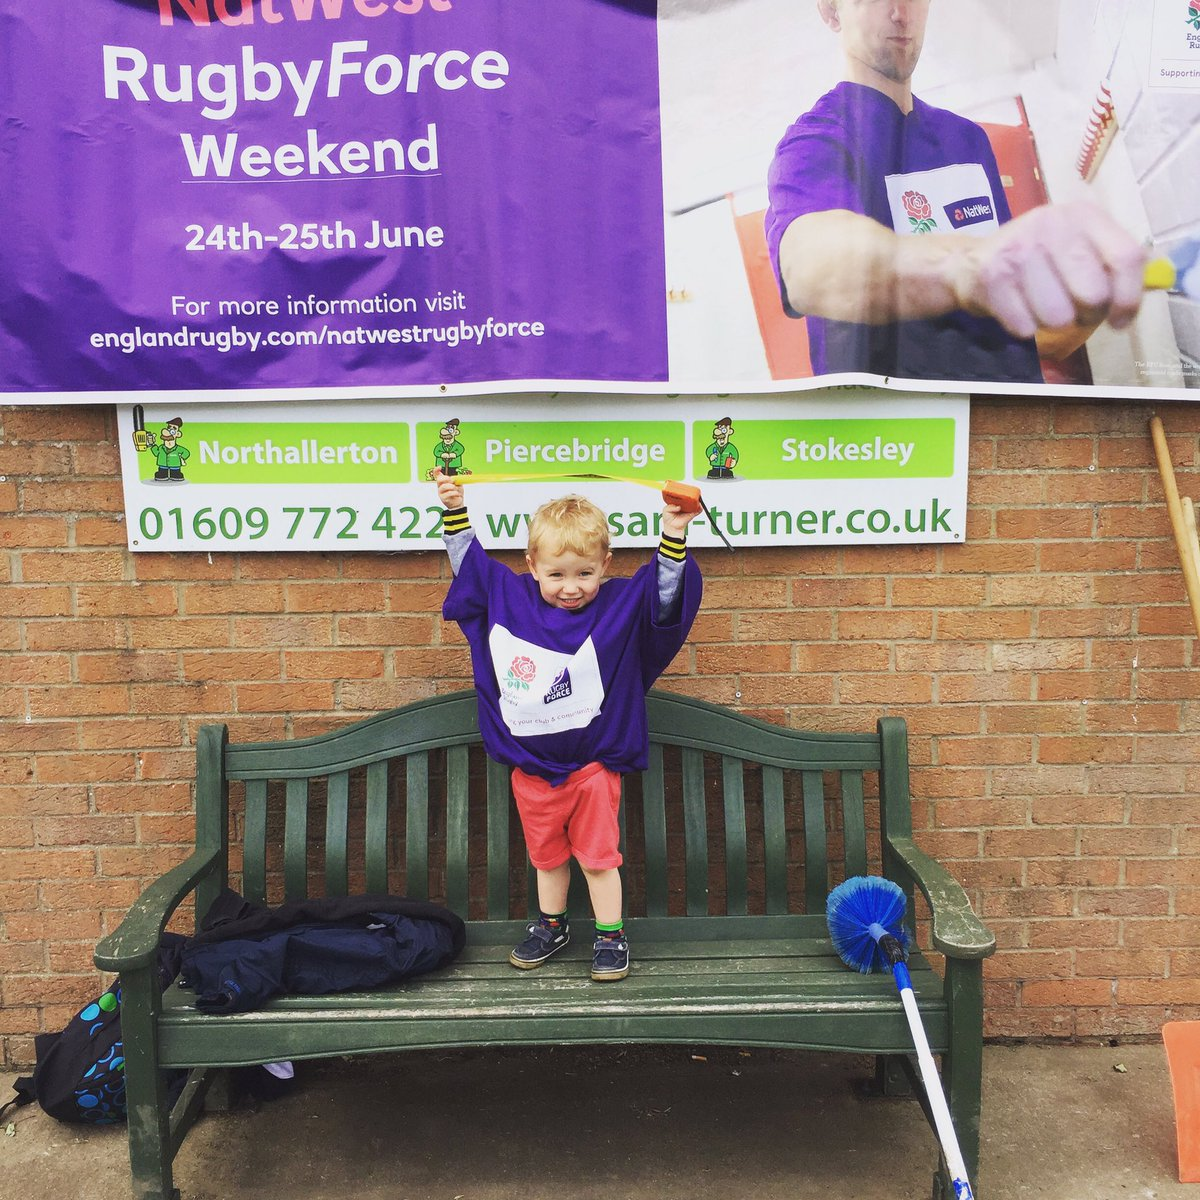 Seth Watts getting involved with Nat West Rugby Force weekend down at @northrugby #rugby @NatWest_Help #rugbyfamily #NRUFC<br>http://pic.twitter.com/8usK4LqPJM